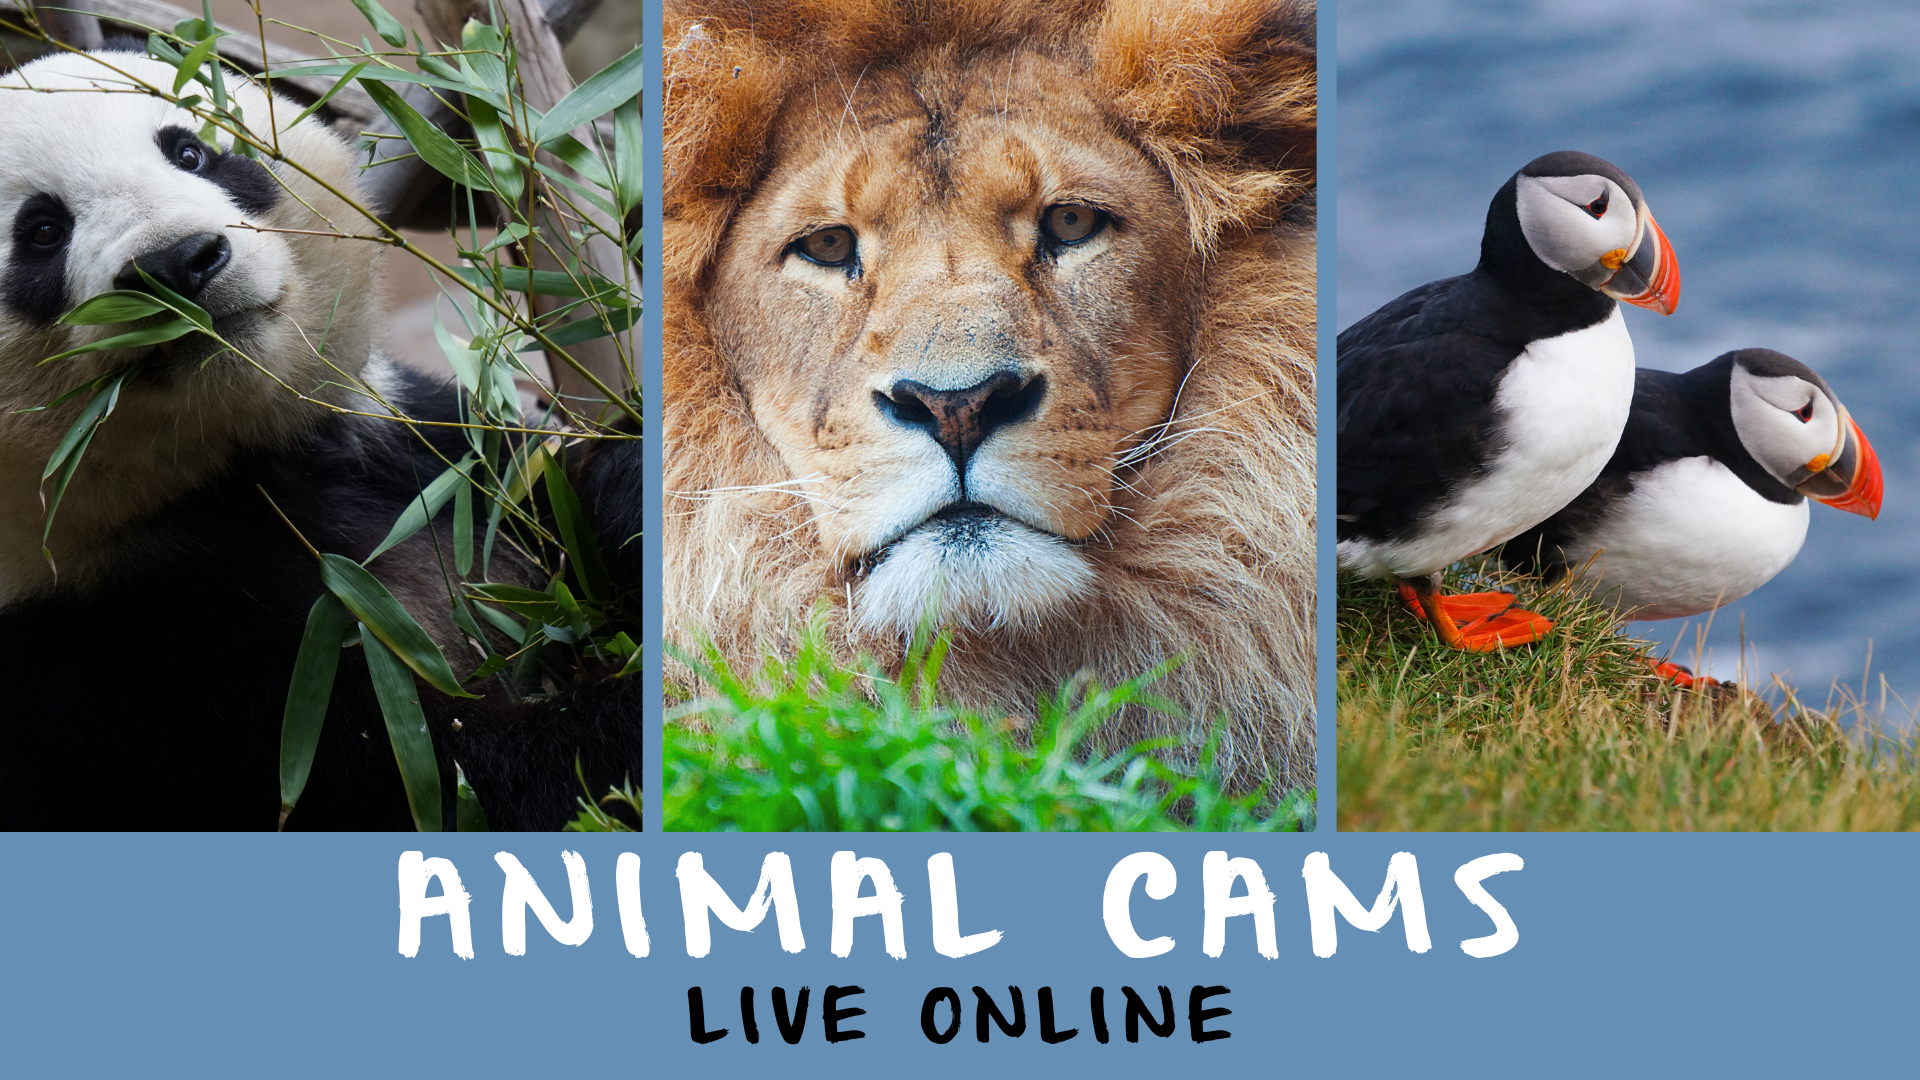 Animal Cams Online